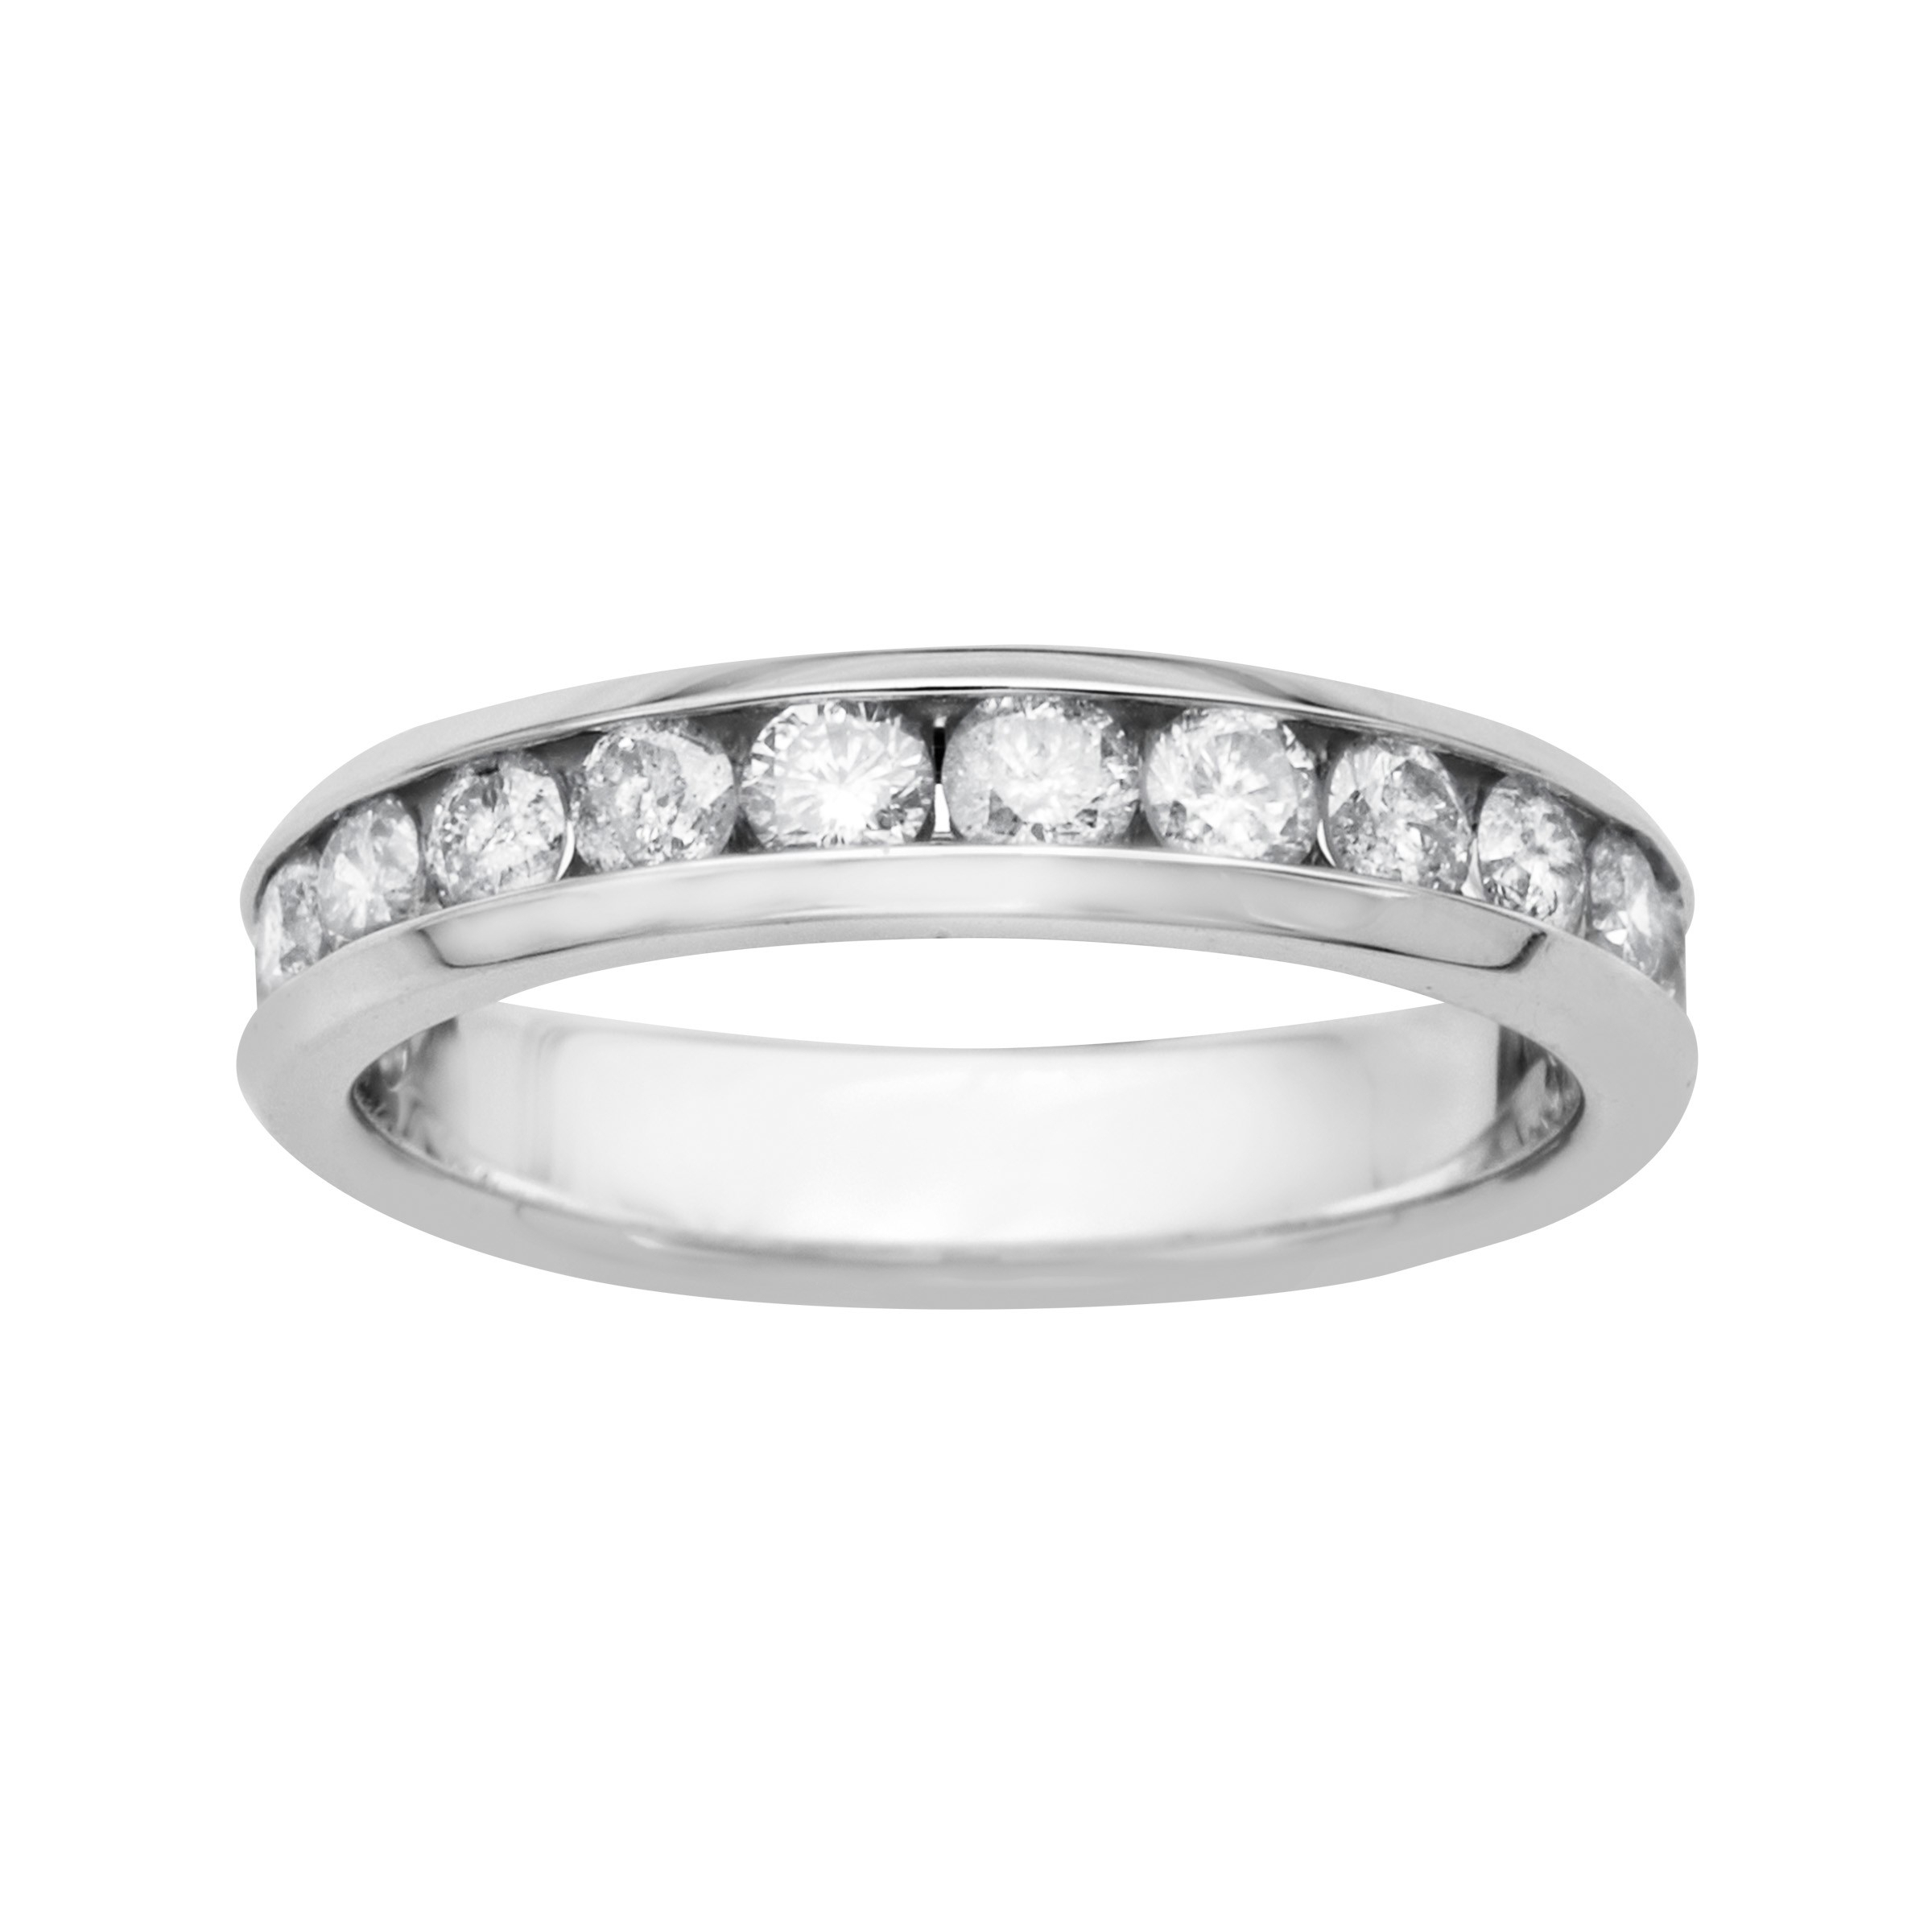 Details About Igi Certified 1 Ct Diamond Anniversary Band In 14k White Gold Intended For Most Current Diamond Contour Anniversary Bands In White Gold (View 13 of 25)